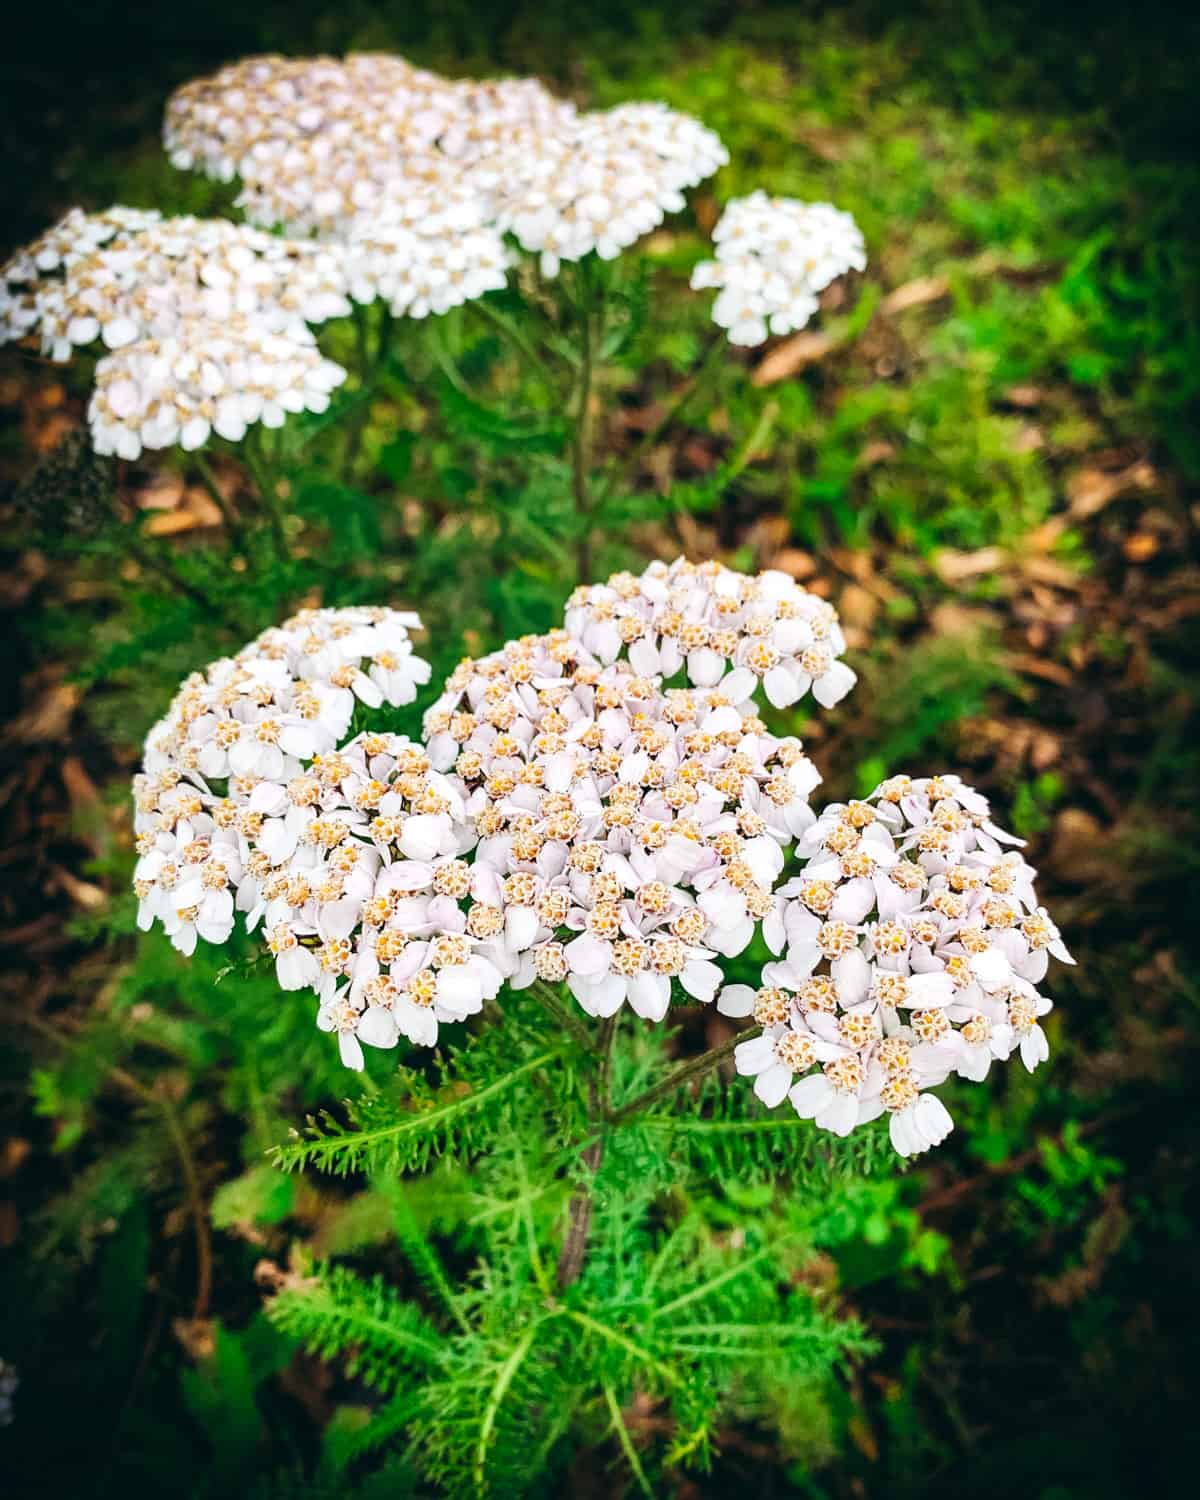 a yarrow plant with white flowers